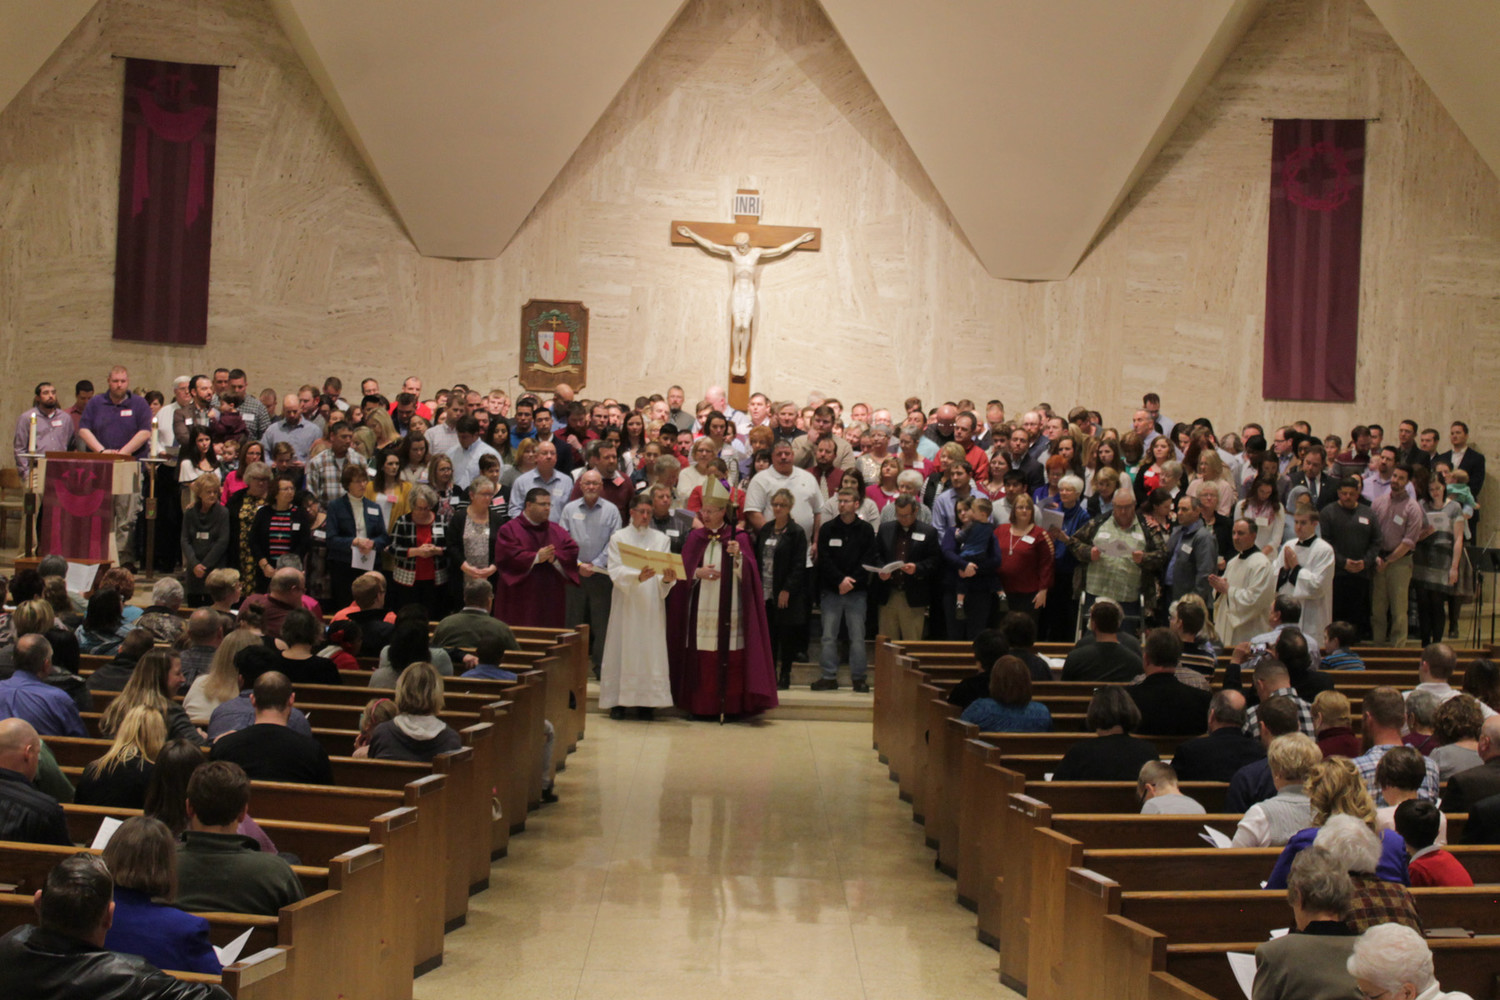 Candidates for full communion with the Catholic Church gather with their sponsors in the in the sanctuary of the Cathedral of St. Joseph in Jefferson City during the Rite of Election and Call to Continuing Conversion on Feb. 18.